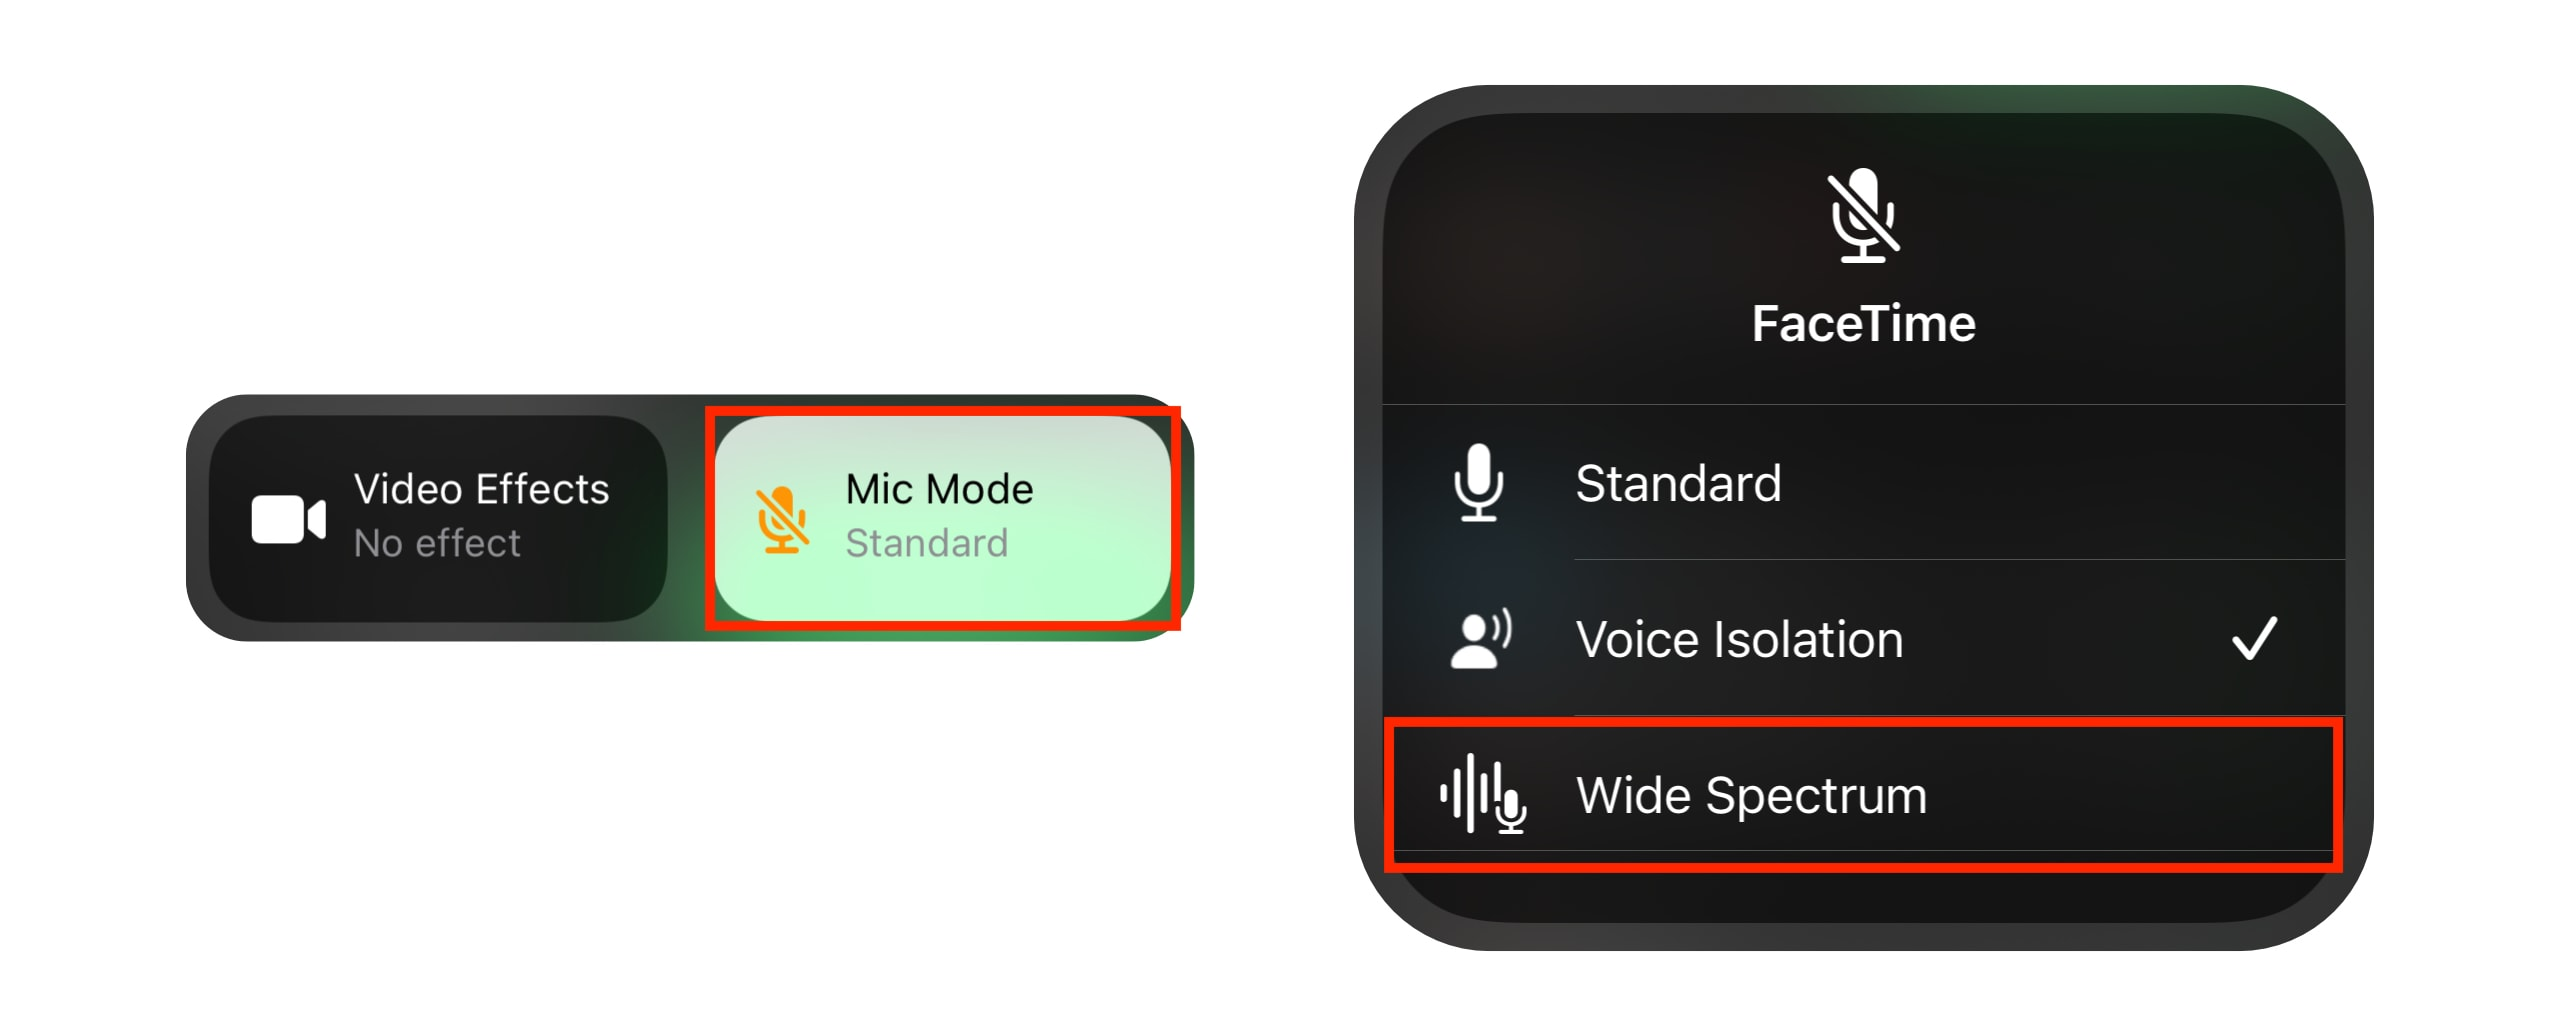 Enable wide spectrum audio for FaceTime calls: Select Mic Mode, then Wide Spectrum